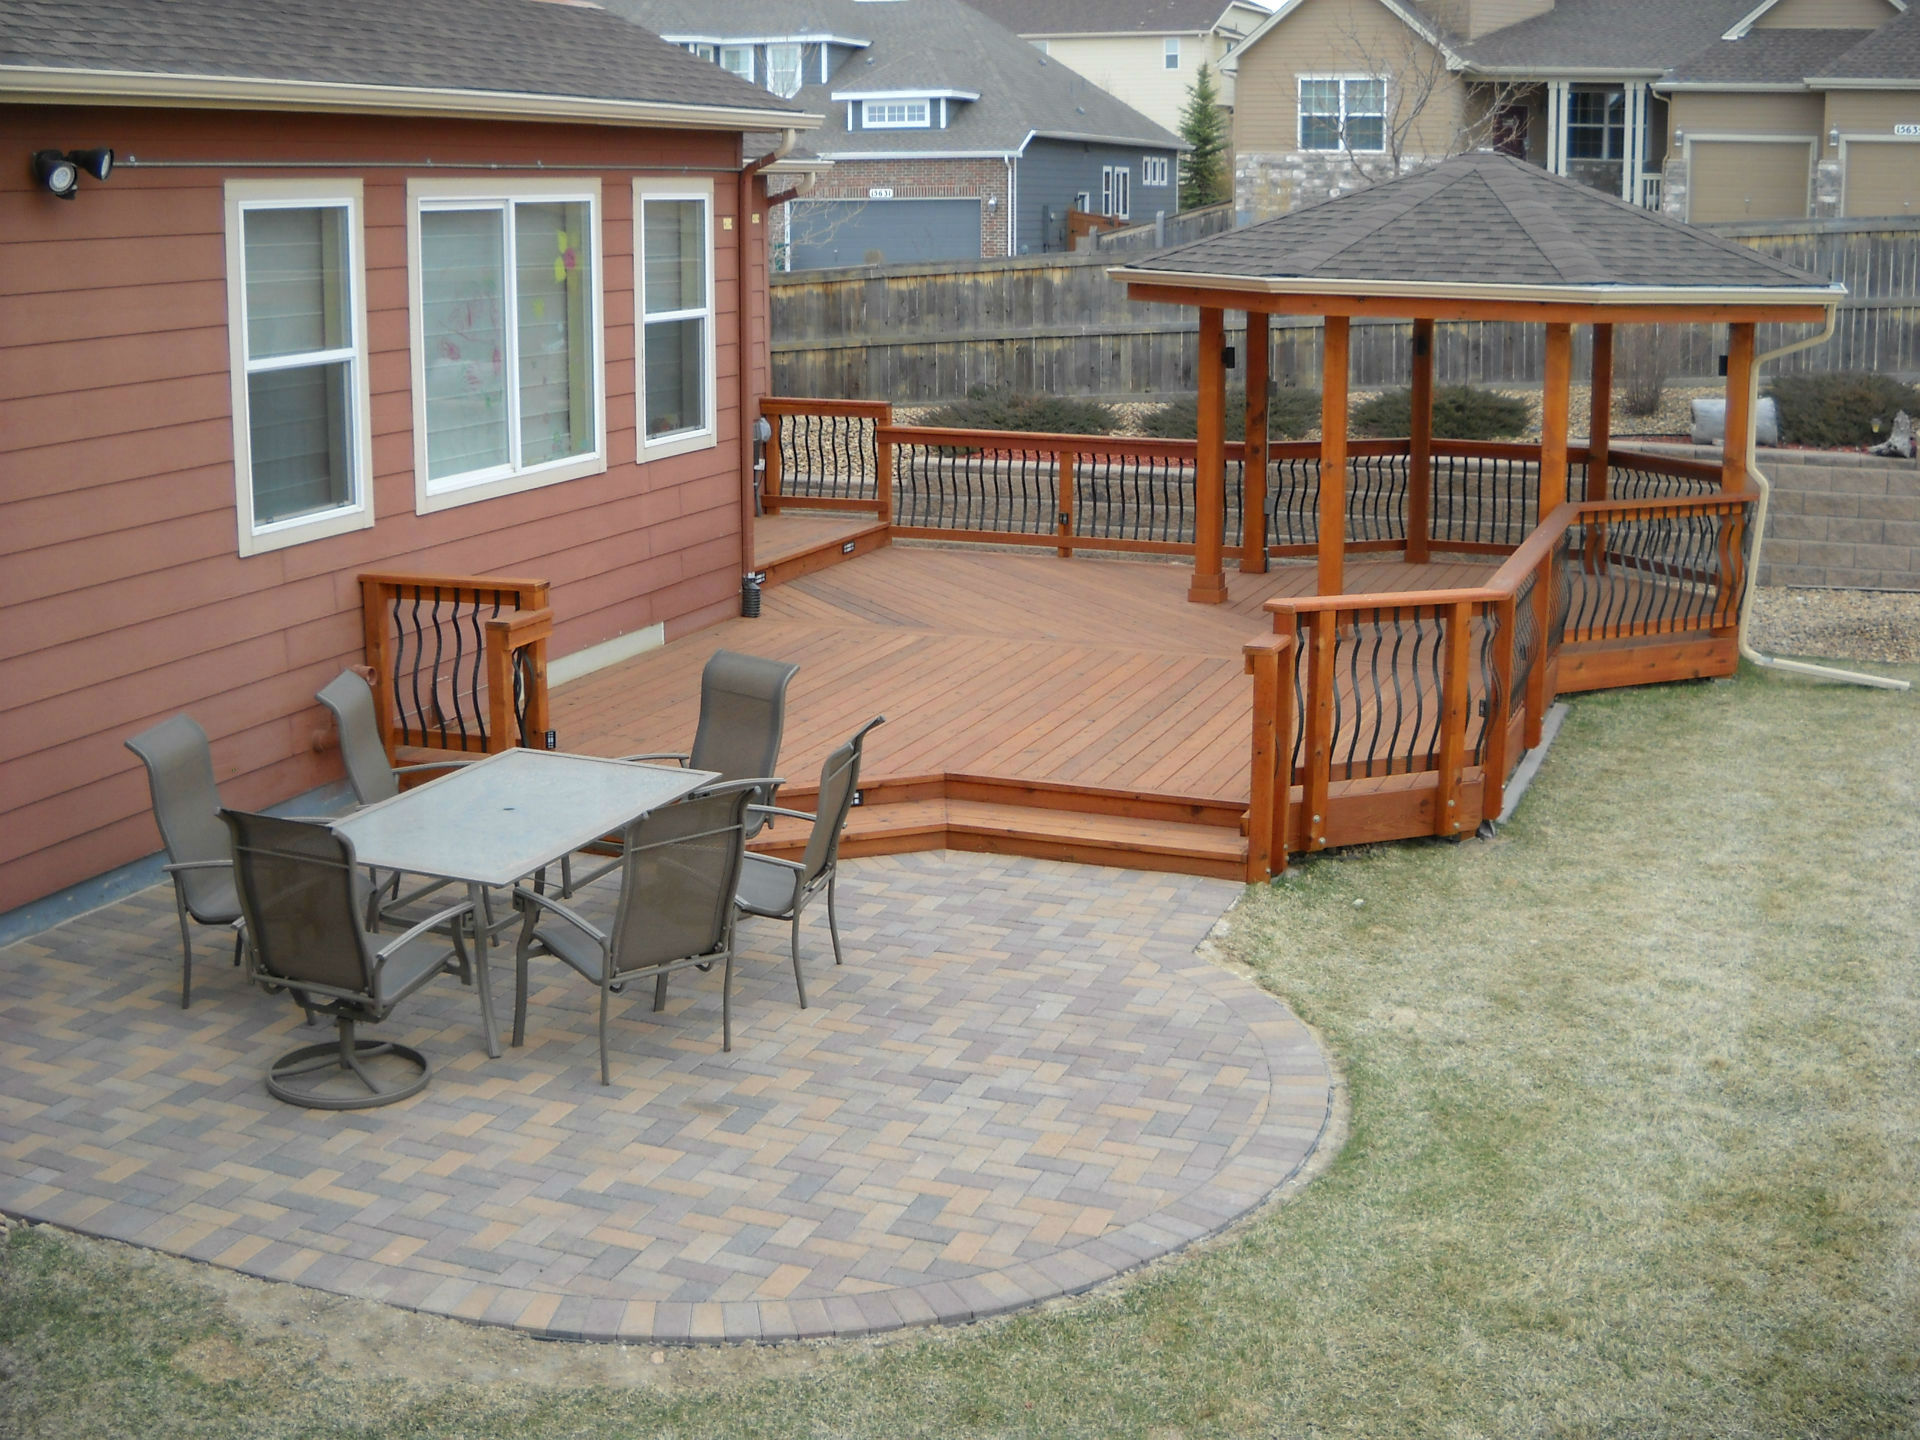 Deck & Patio Combinations - DeckTec Outdoor Designs on Patio With Deck Ideas id=42026